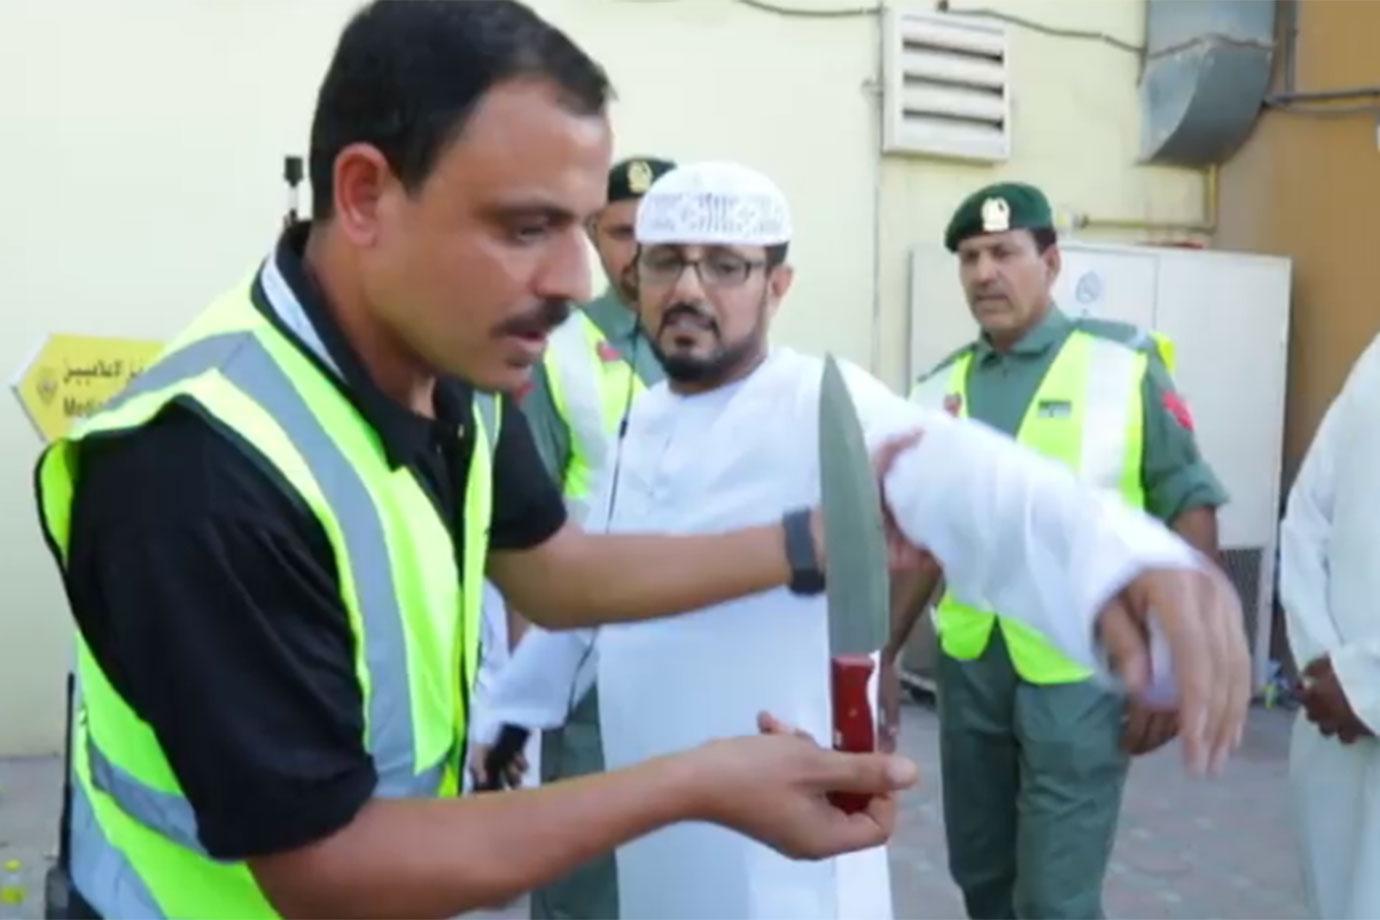 White weapons in UAE